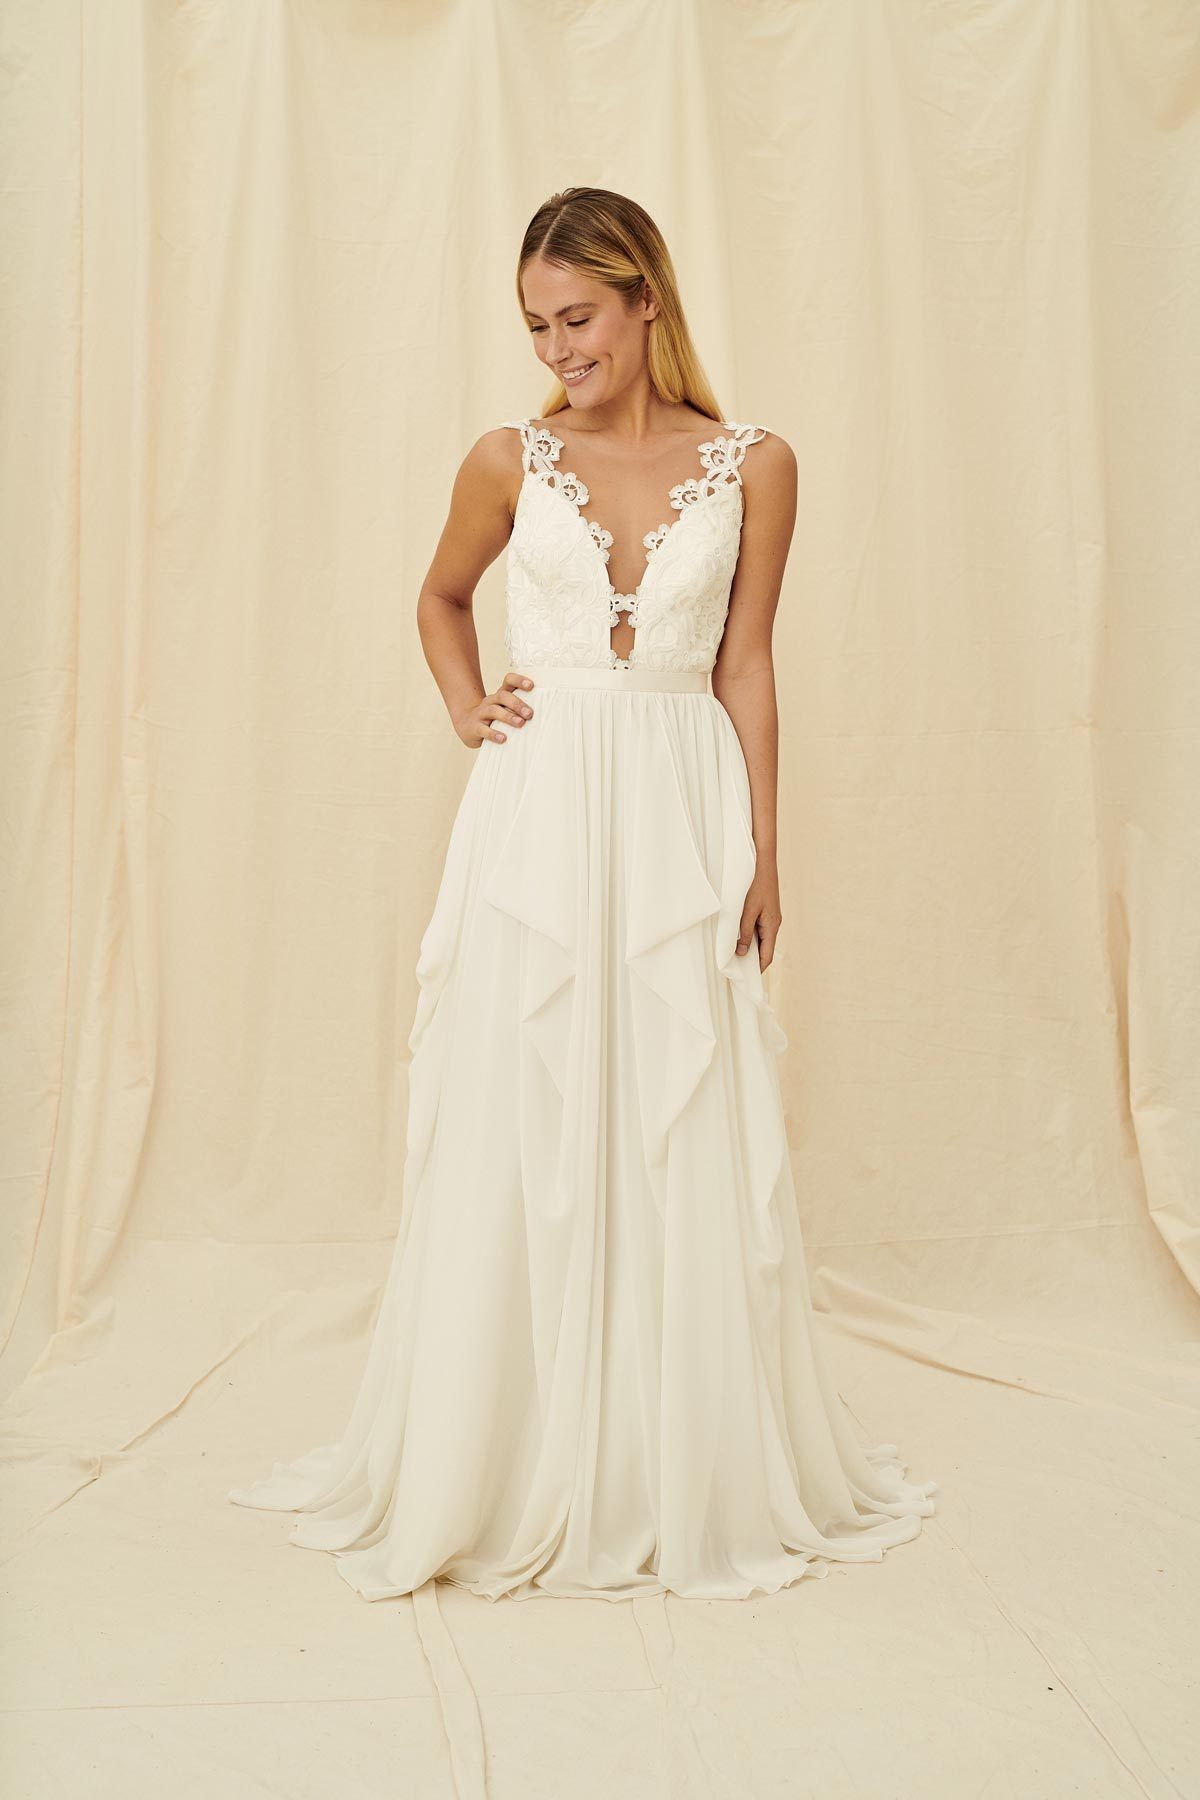 Truvelle Julie An Illusion Neckline With Lace Scallops And An A Line Chiffon Skirt Made In Vanco Wedding Dress Shopping Wedding Dresses Modern Wedding Dress [ 1800 x 1200 Pixel ]